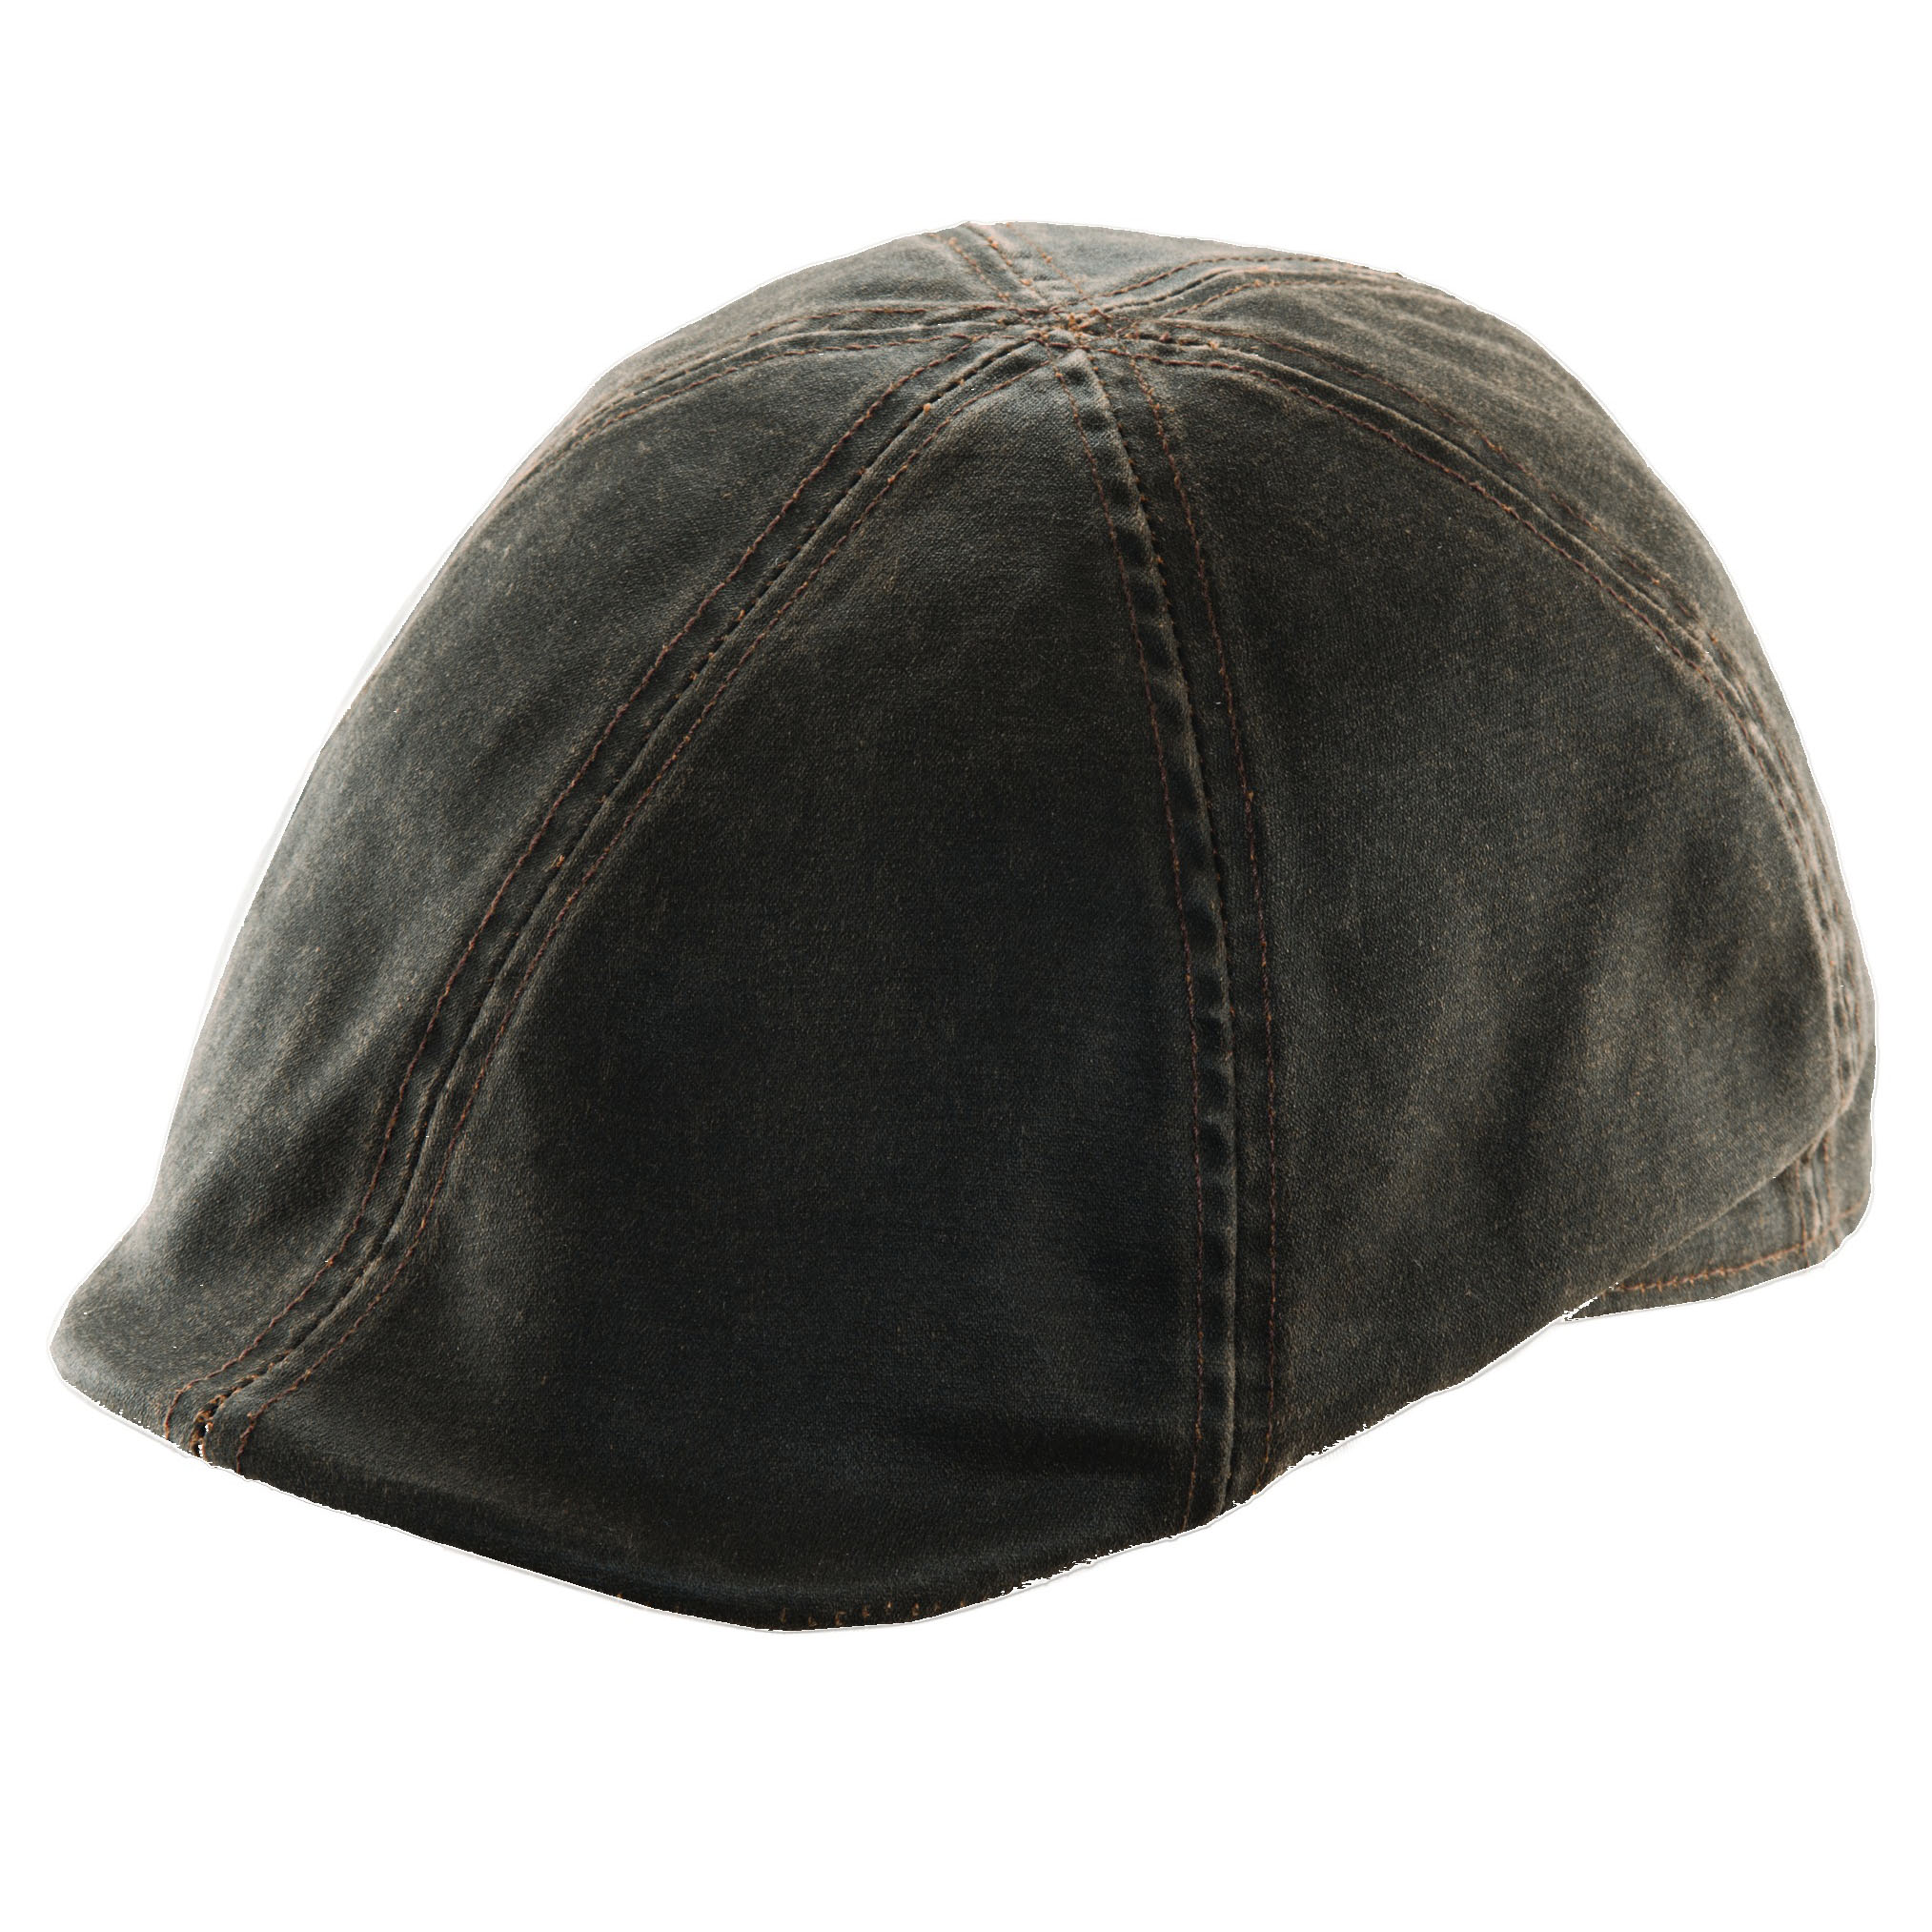 Weathered Cotton Duckbill Cap Brown f153fc2dd3f